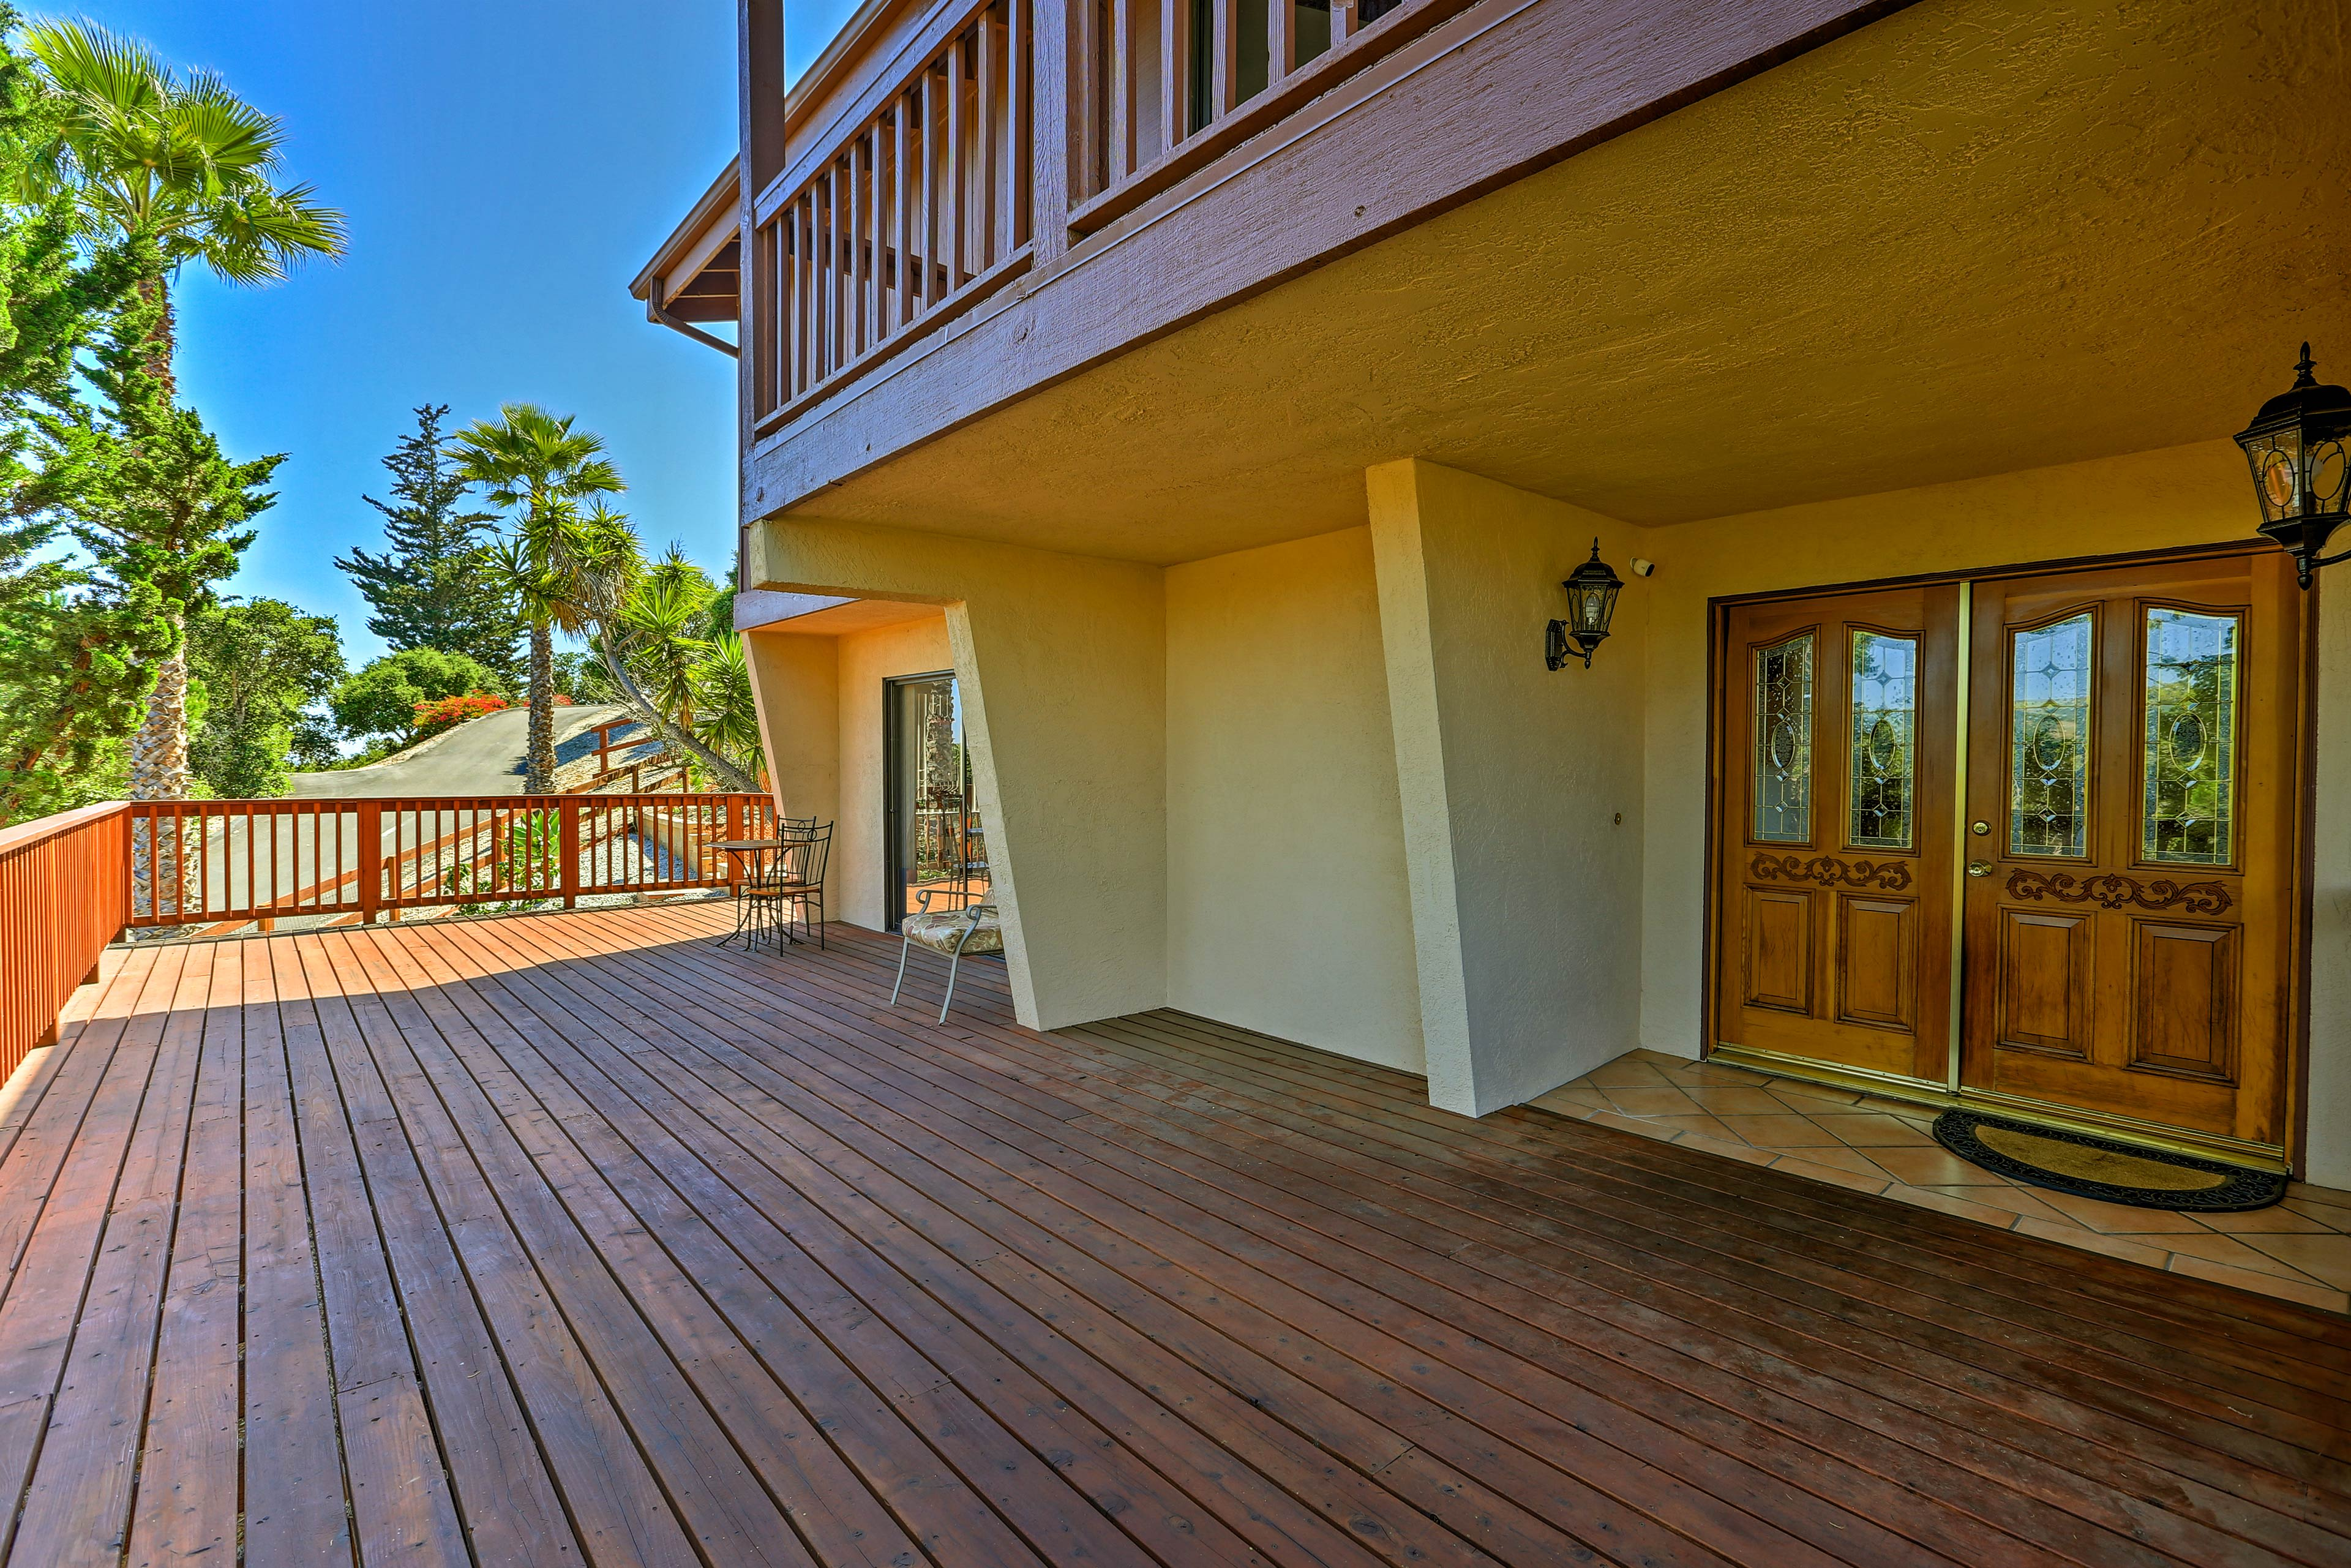 You'll love greeting the day on this redwood deck.